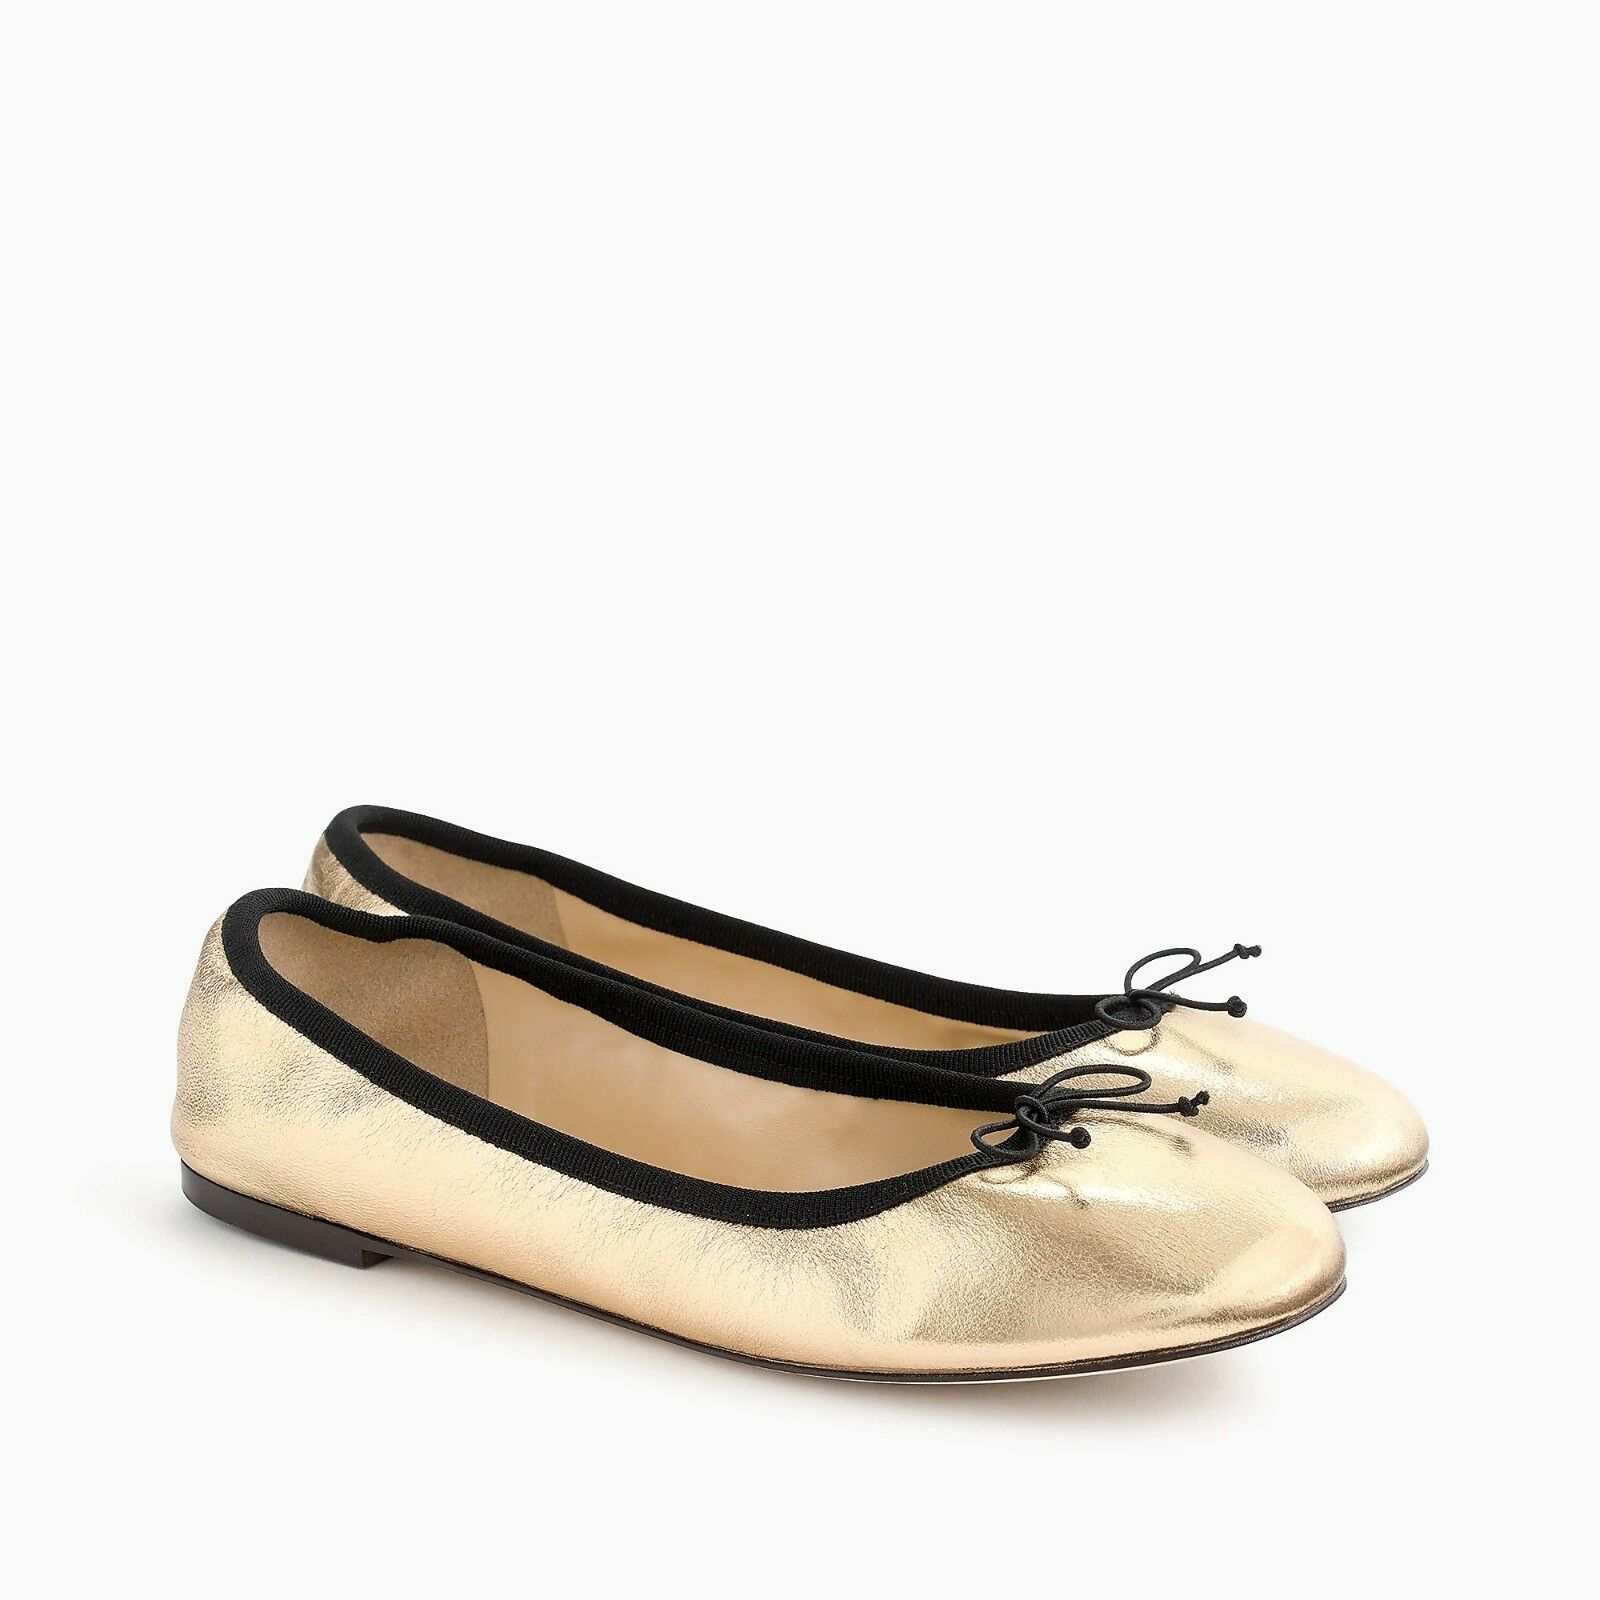 Nouveau J. CREW femmes Evie Ballerines en or-New in Box-Taille 6.5